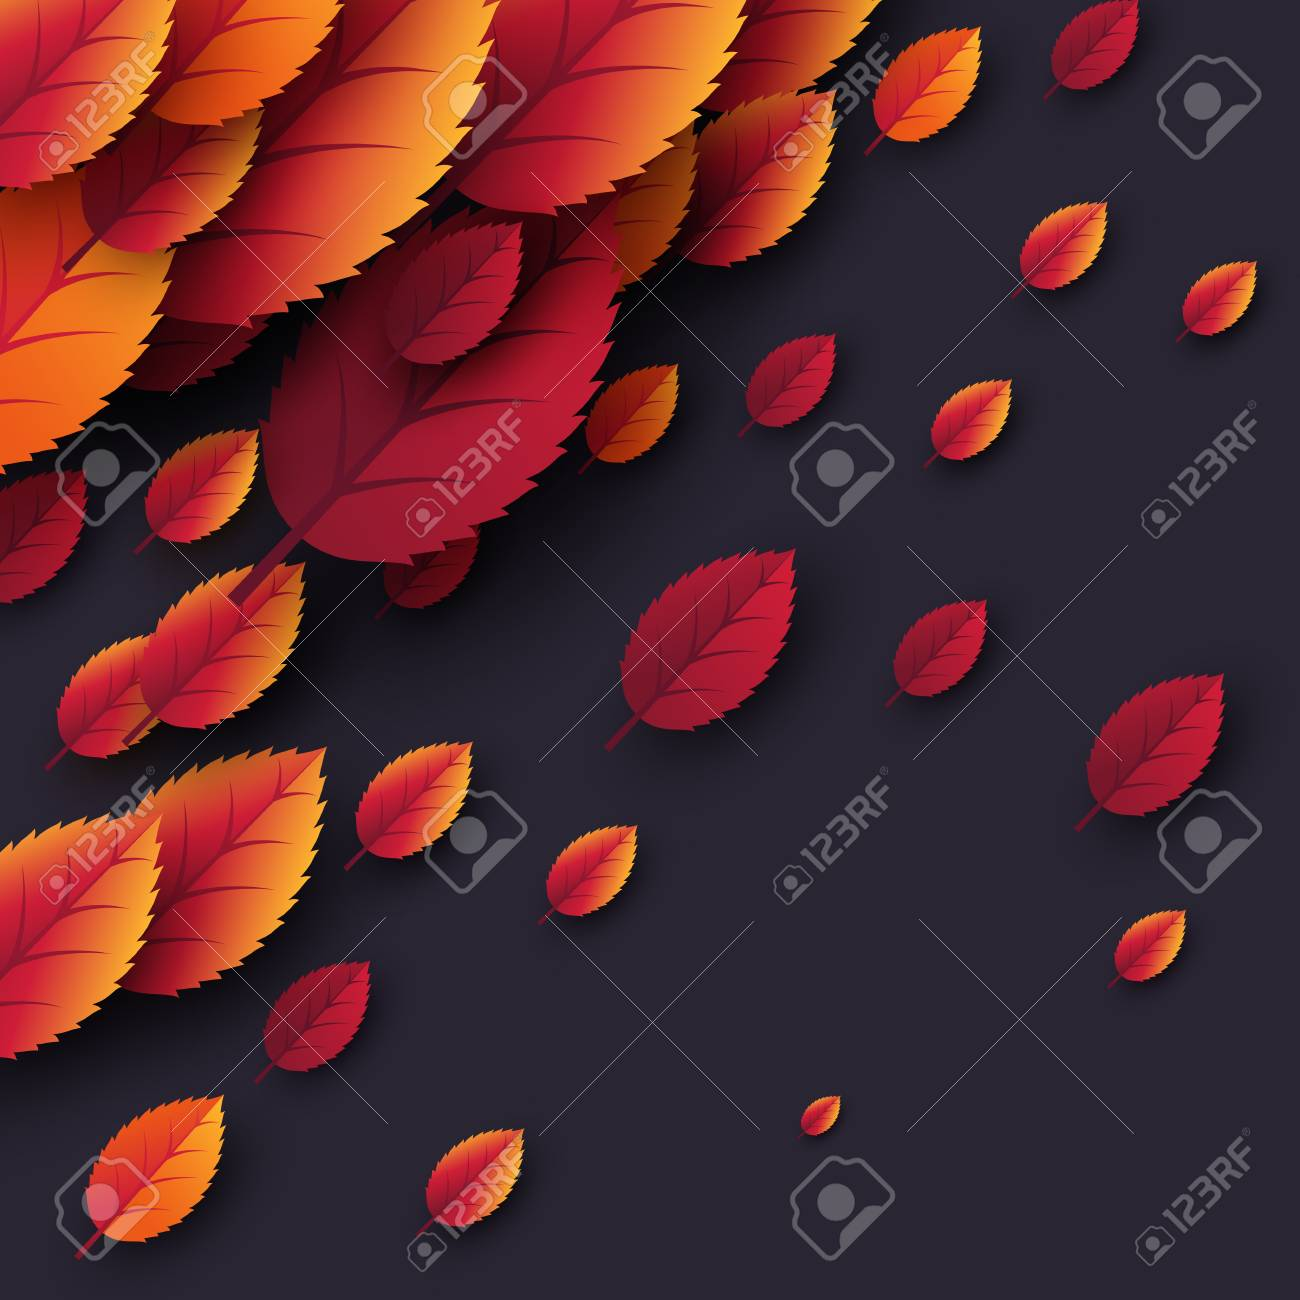 3d Realistic Autumn Fall Leaves Autumnal Background In Dark Colors Design For Web